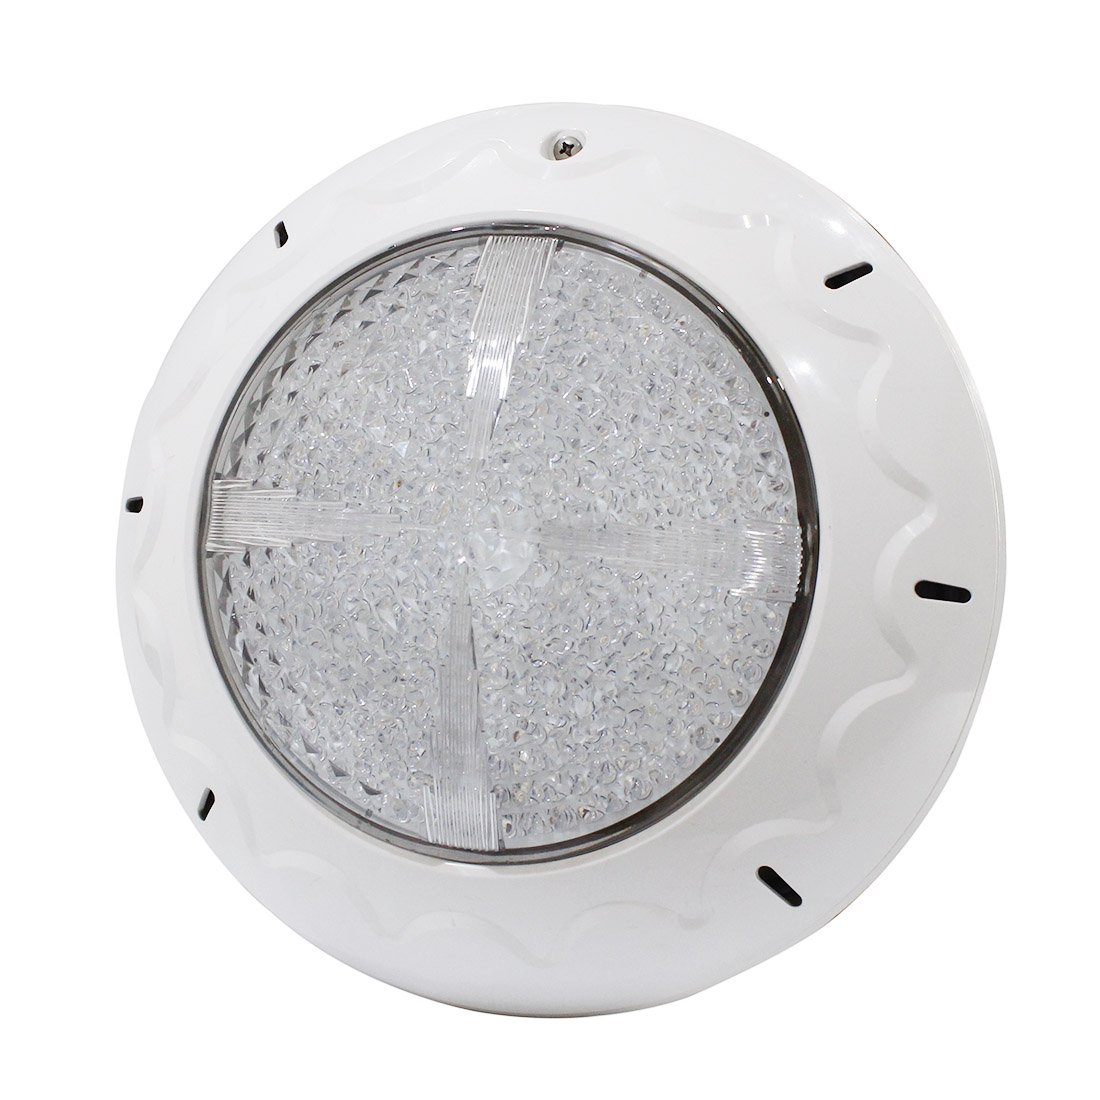 NINGBO IRING 351pcs LED RGB Underwater Swimming Pool Light Fountains Wall Lamp with Remote Control,AC12V 25W